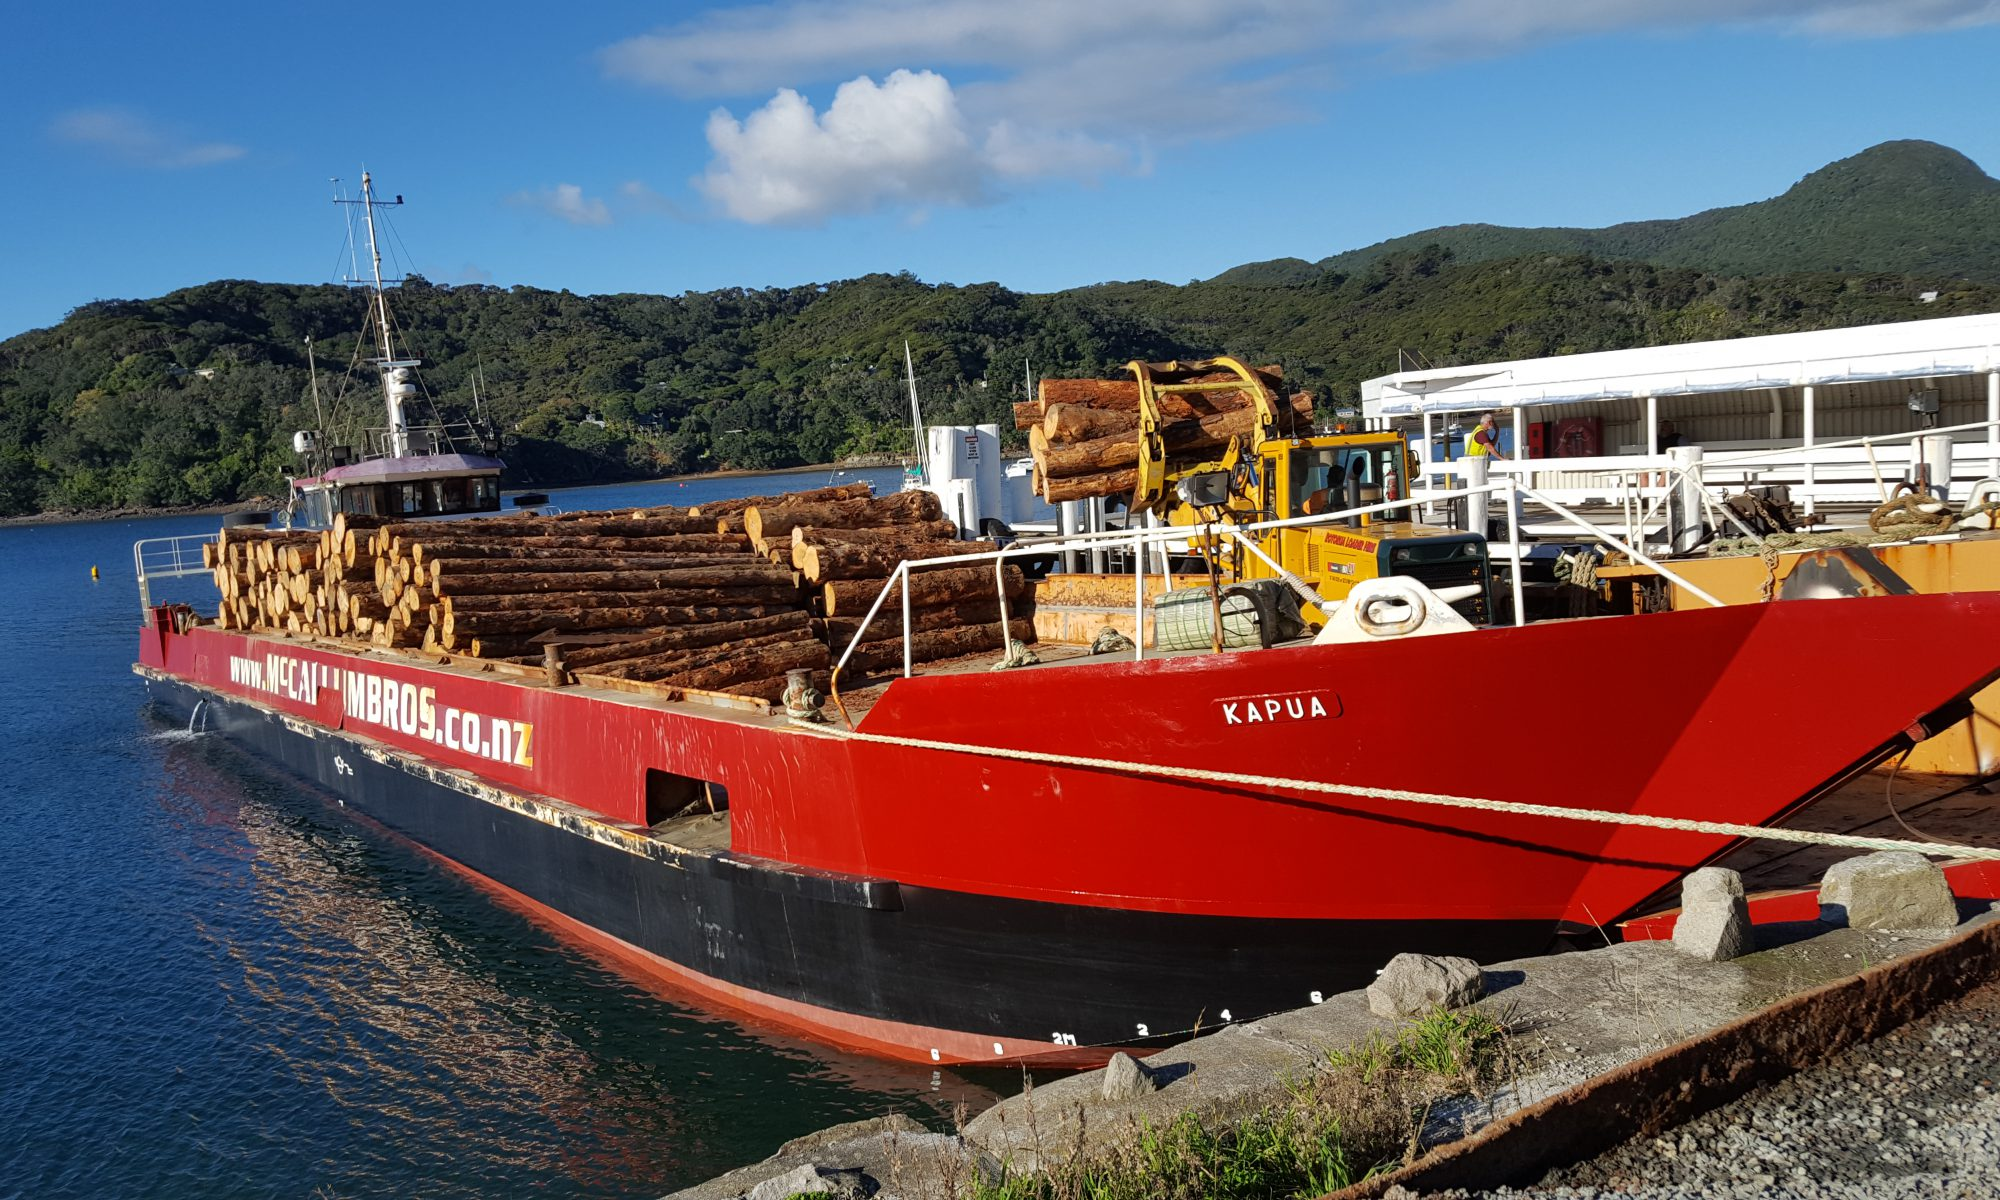 Kapua motorised barge contract transport of logs in Haurake Gulf